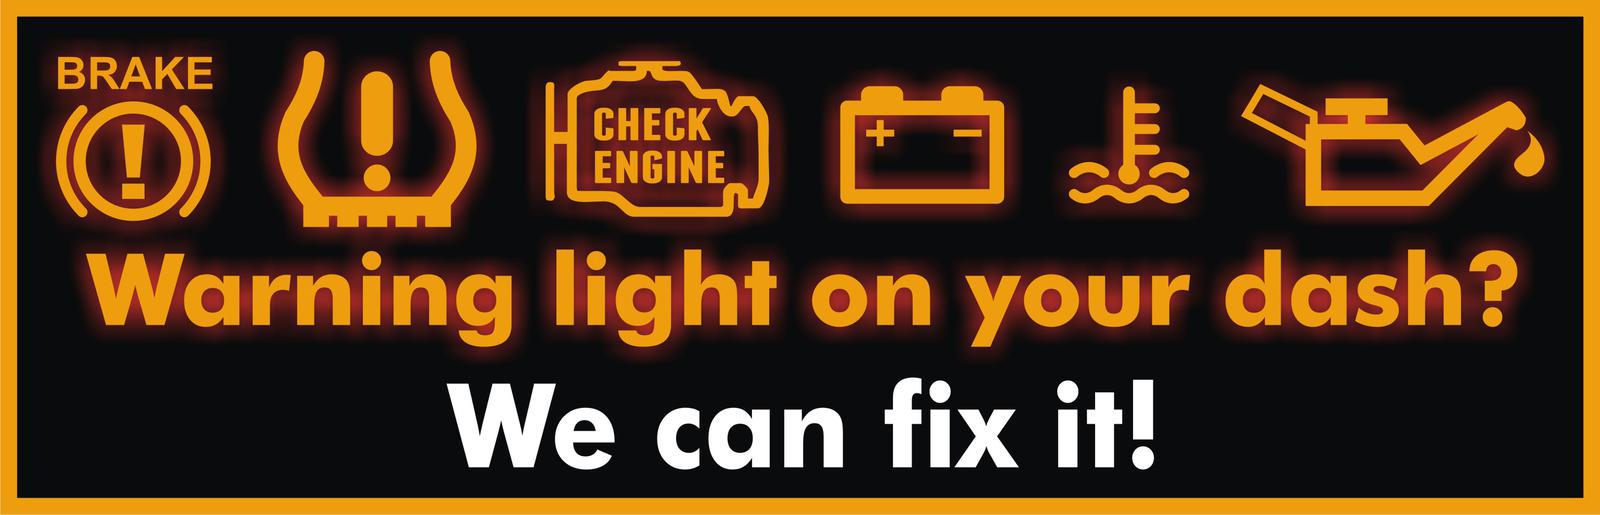 Warning light on your dash? We can fix it!